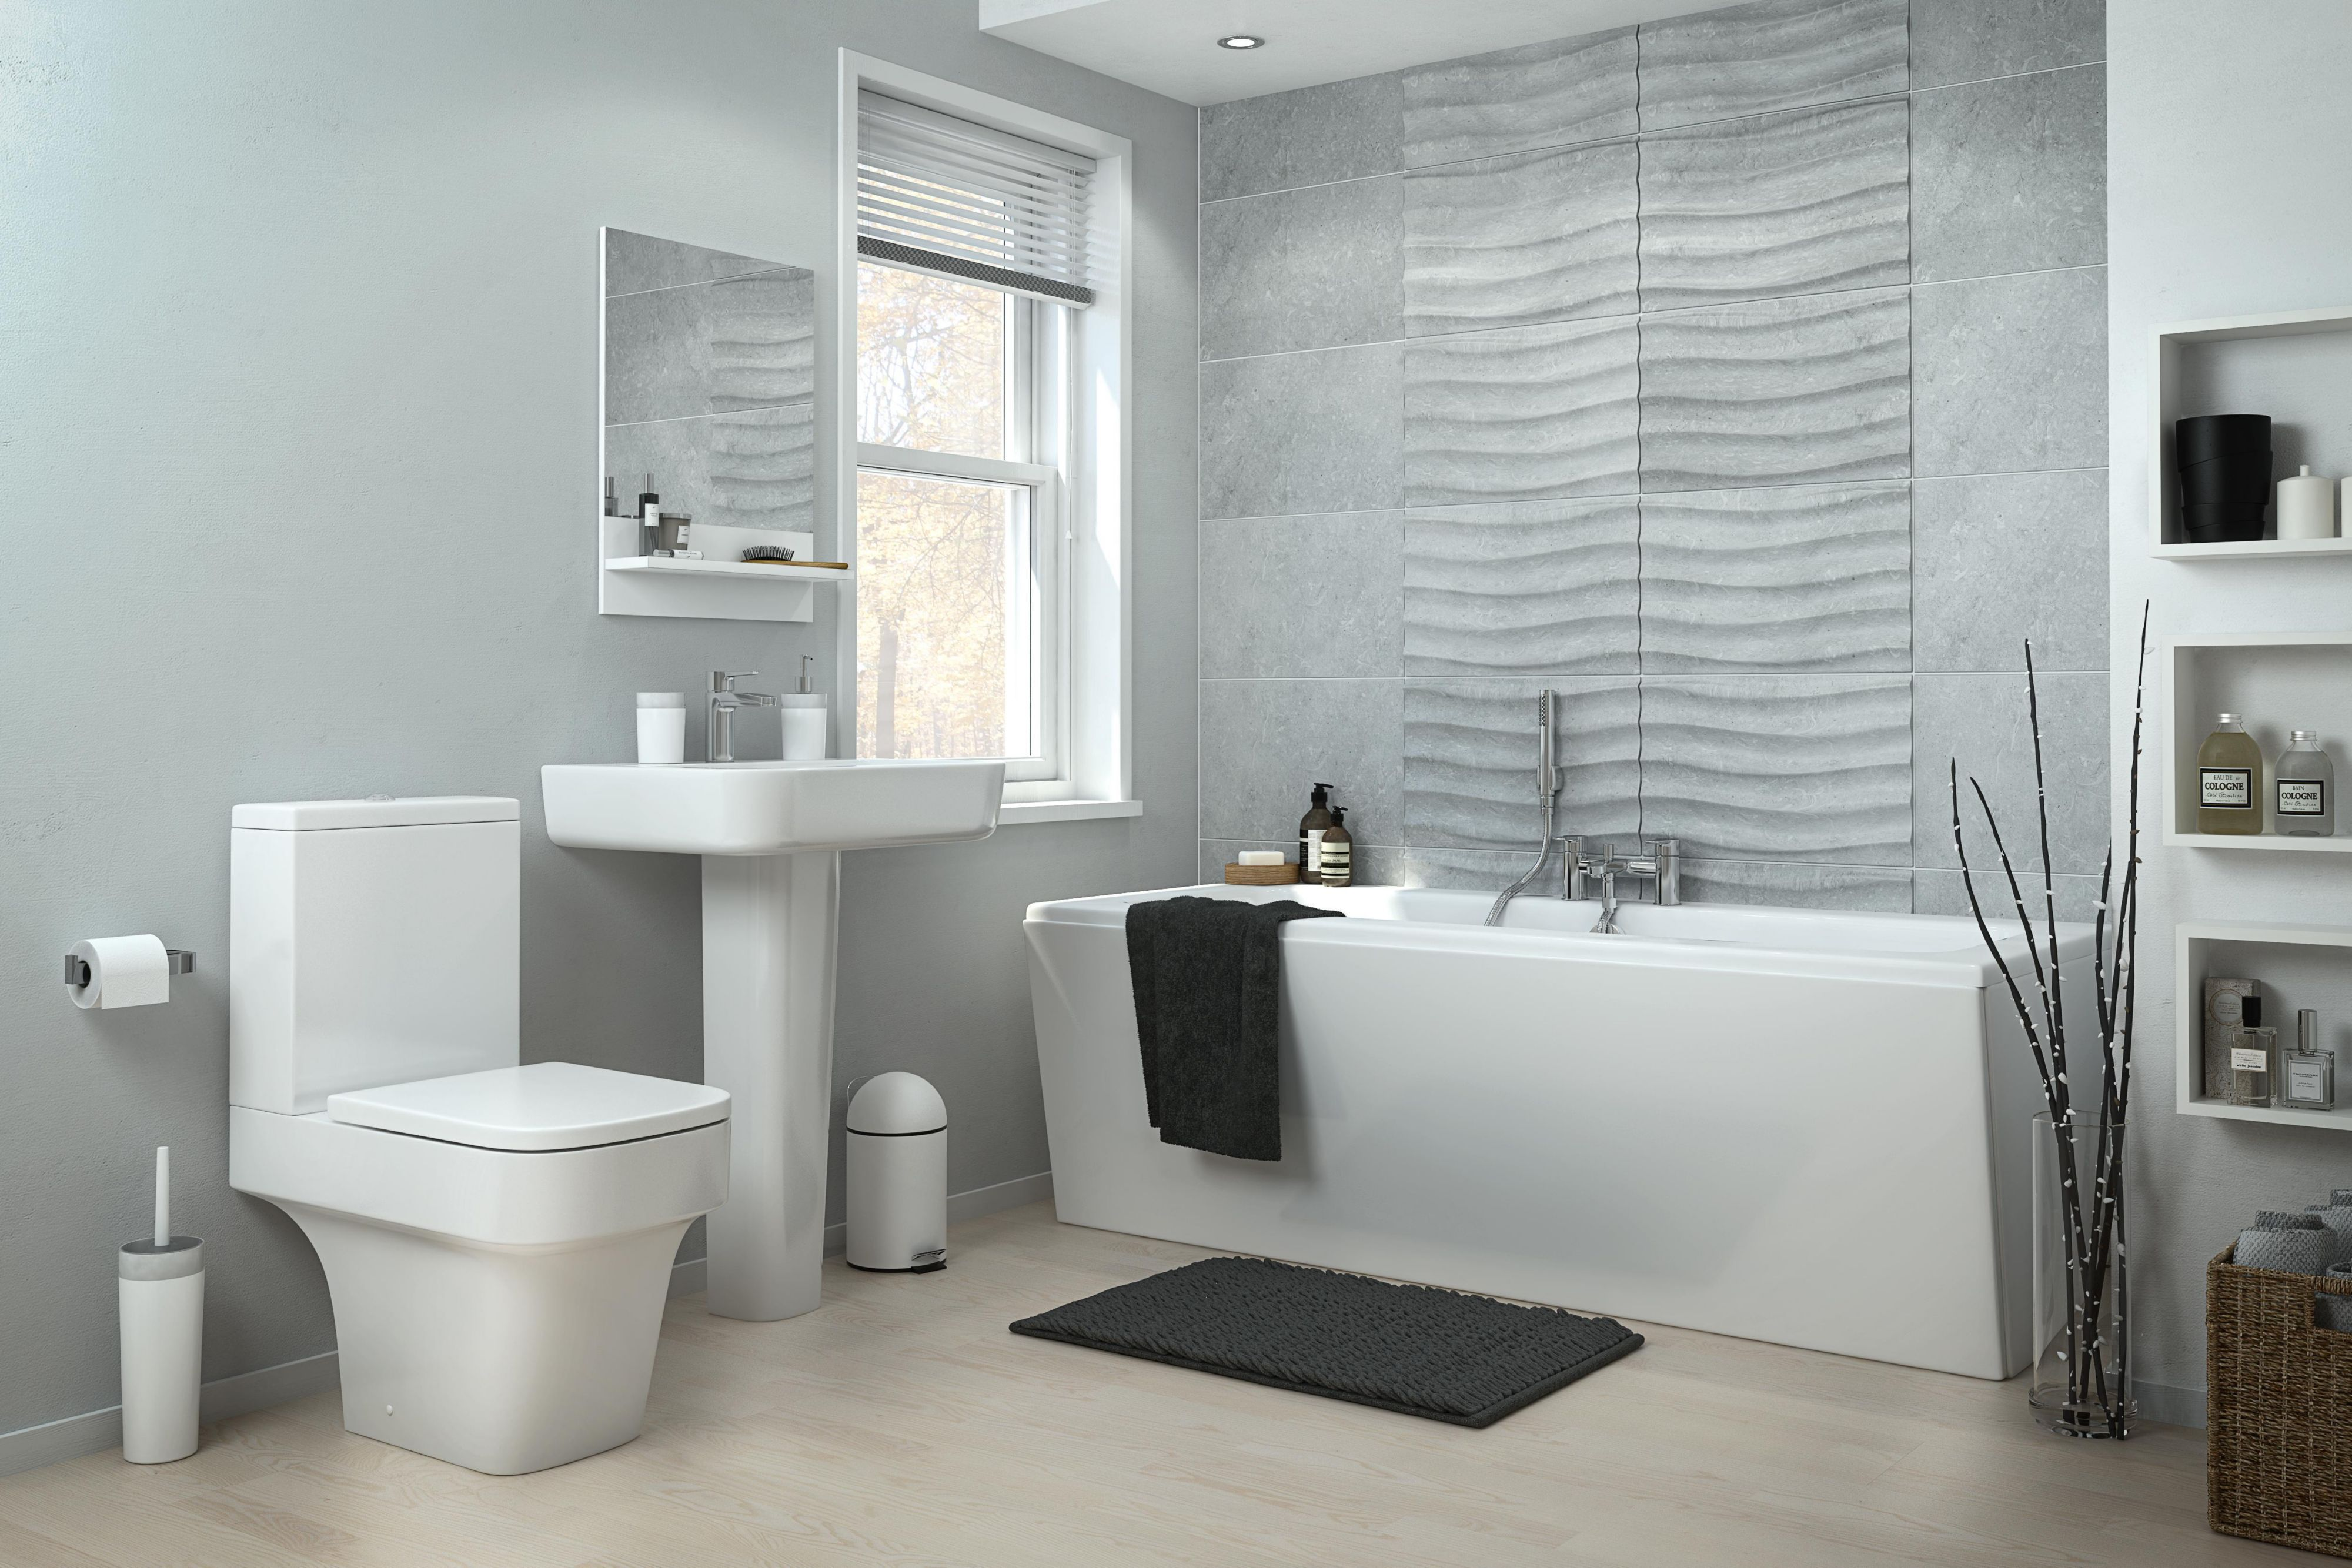 31 Bathroom Suites Ideas - Discover Your Perfect Style | Bathroom ...